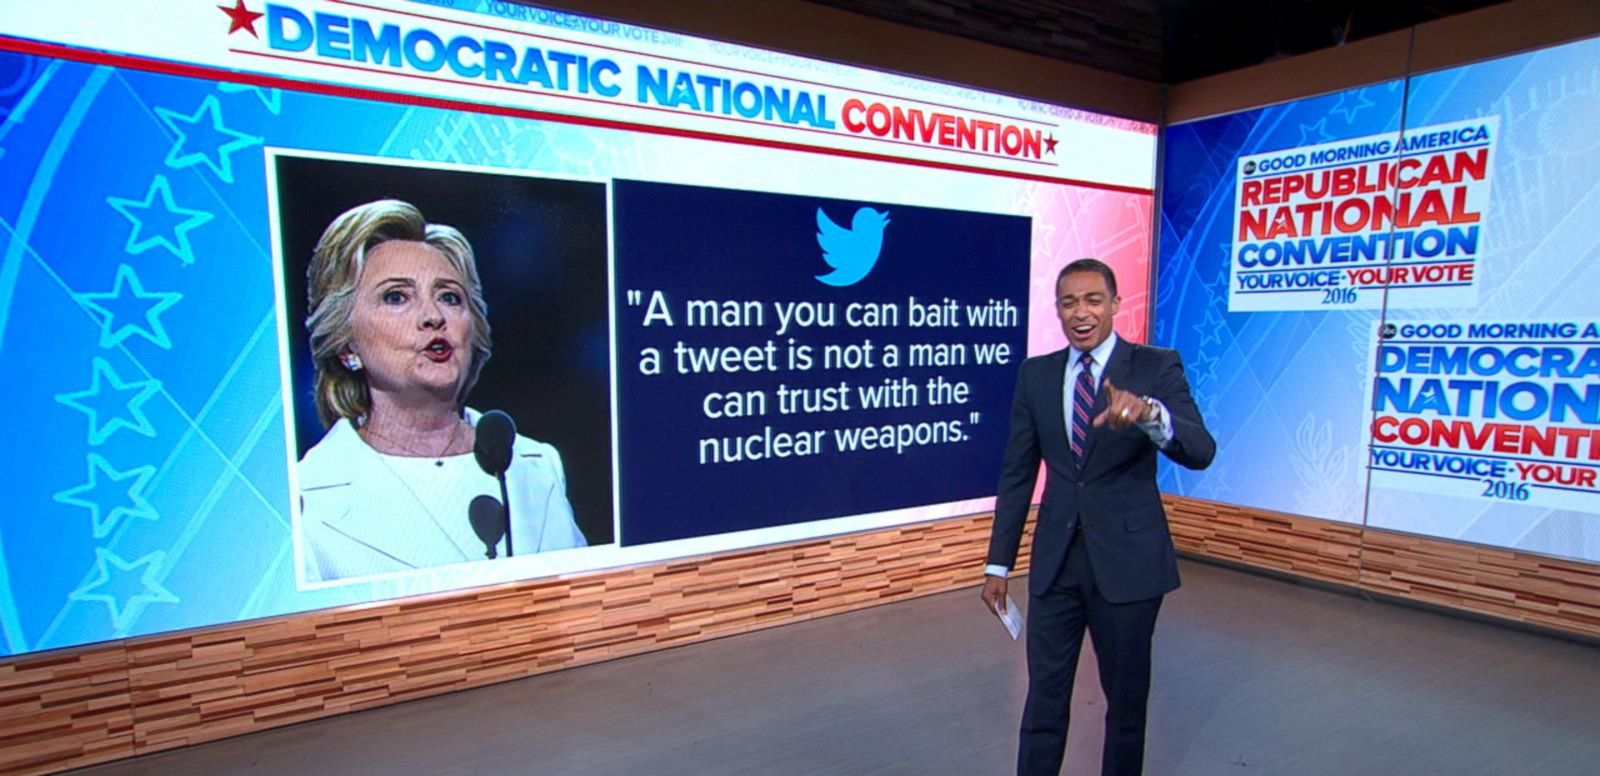 VIDEO: Which Party's Convention Won Over Social Media?